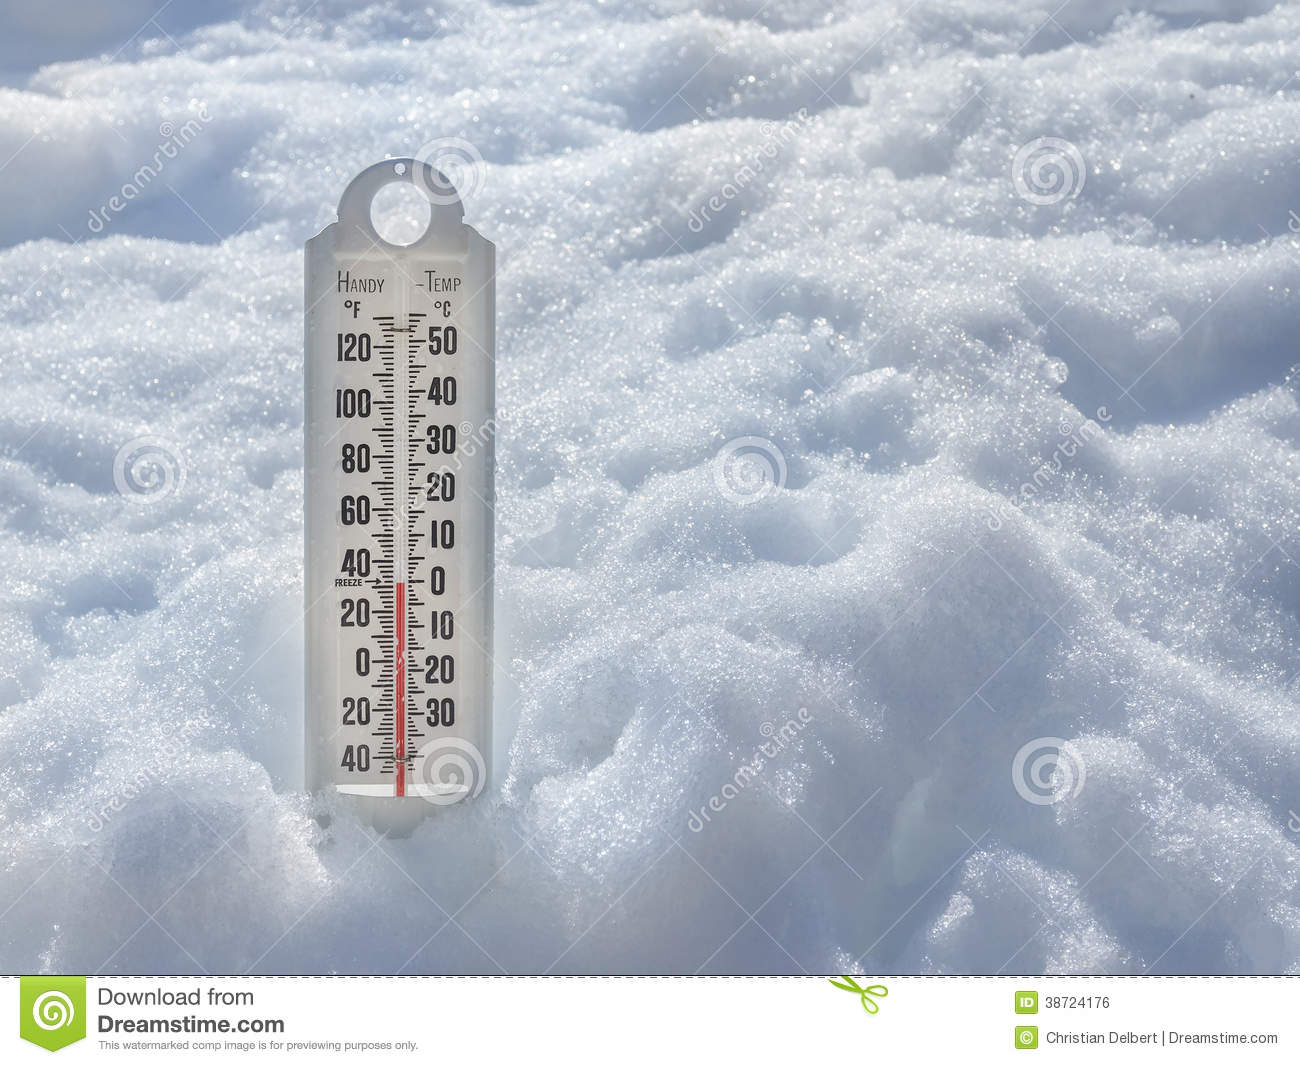 ... Cold Thermometer In Snow Royalty Free Stock Image - Image: 38724176